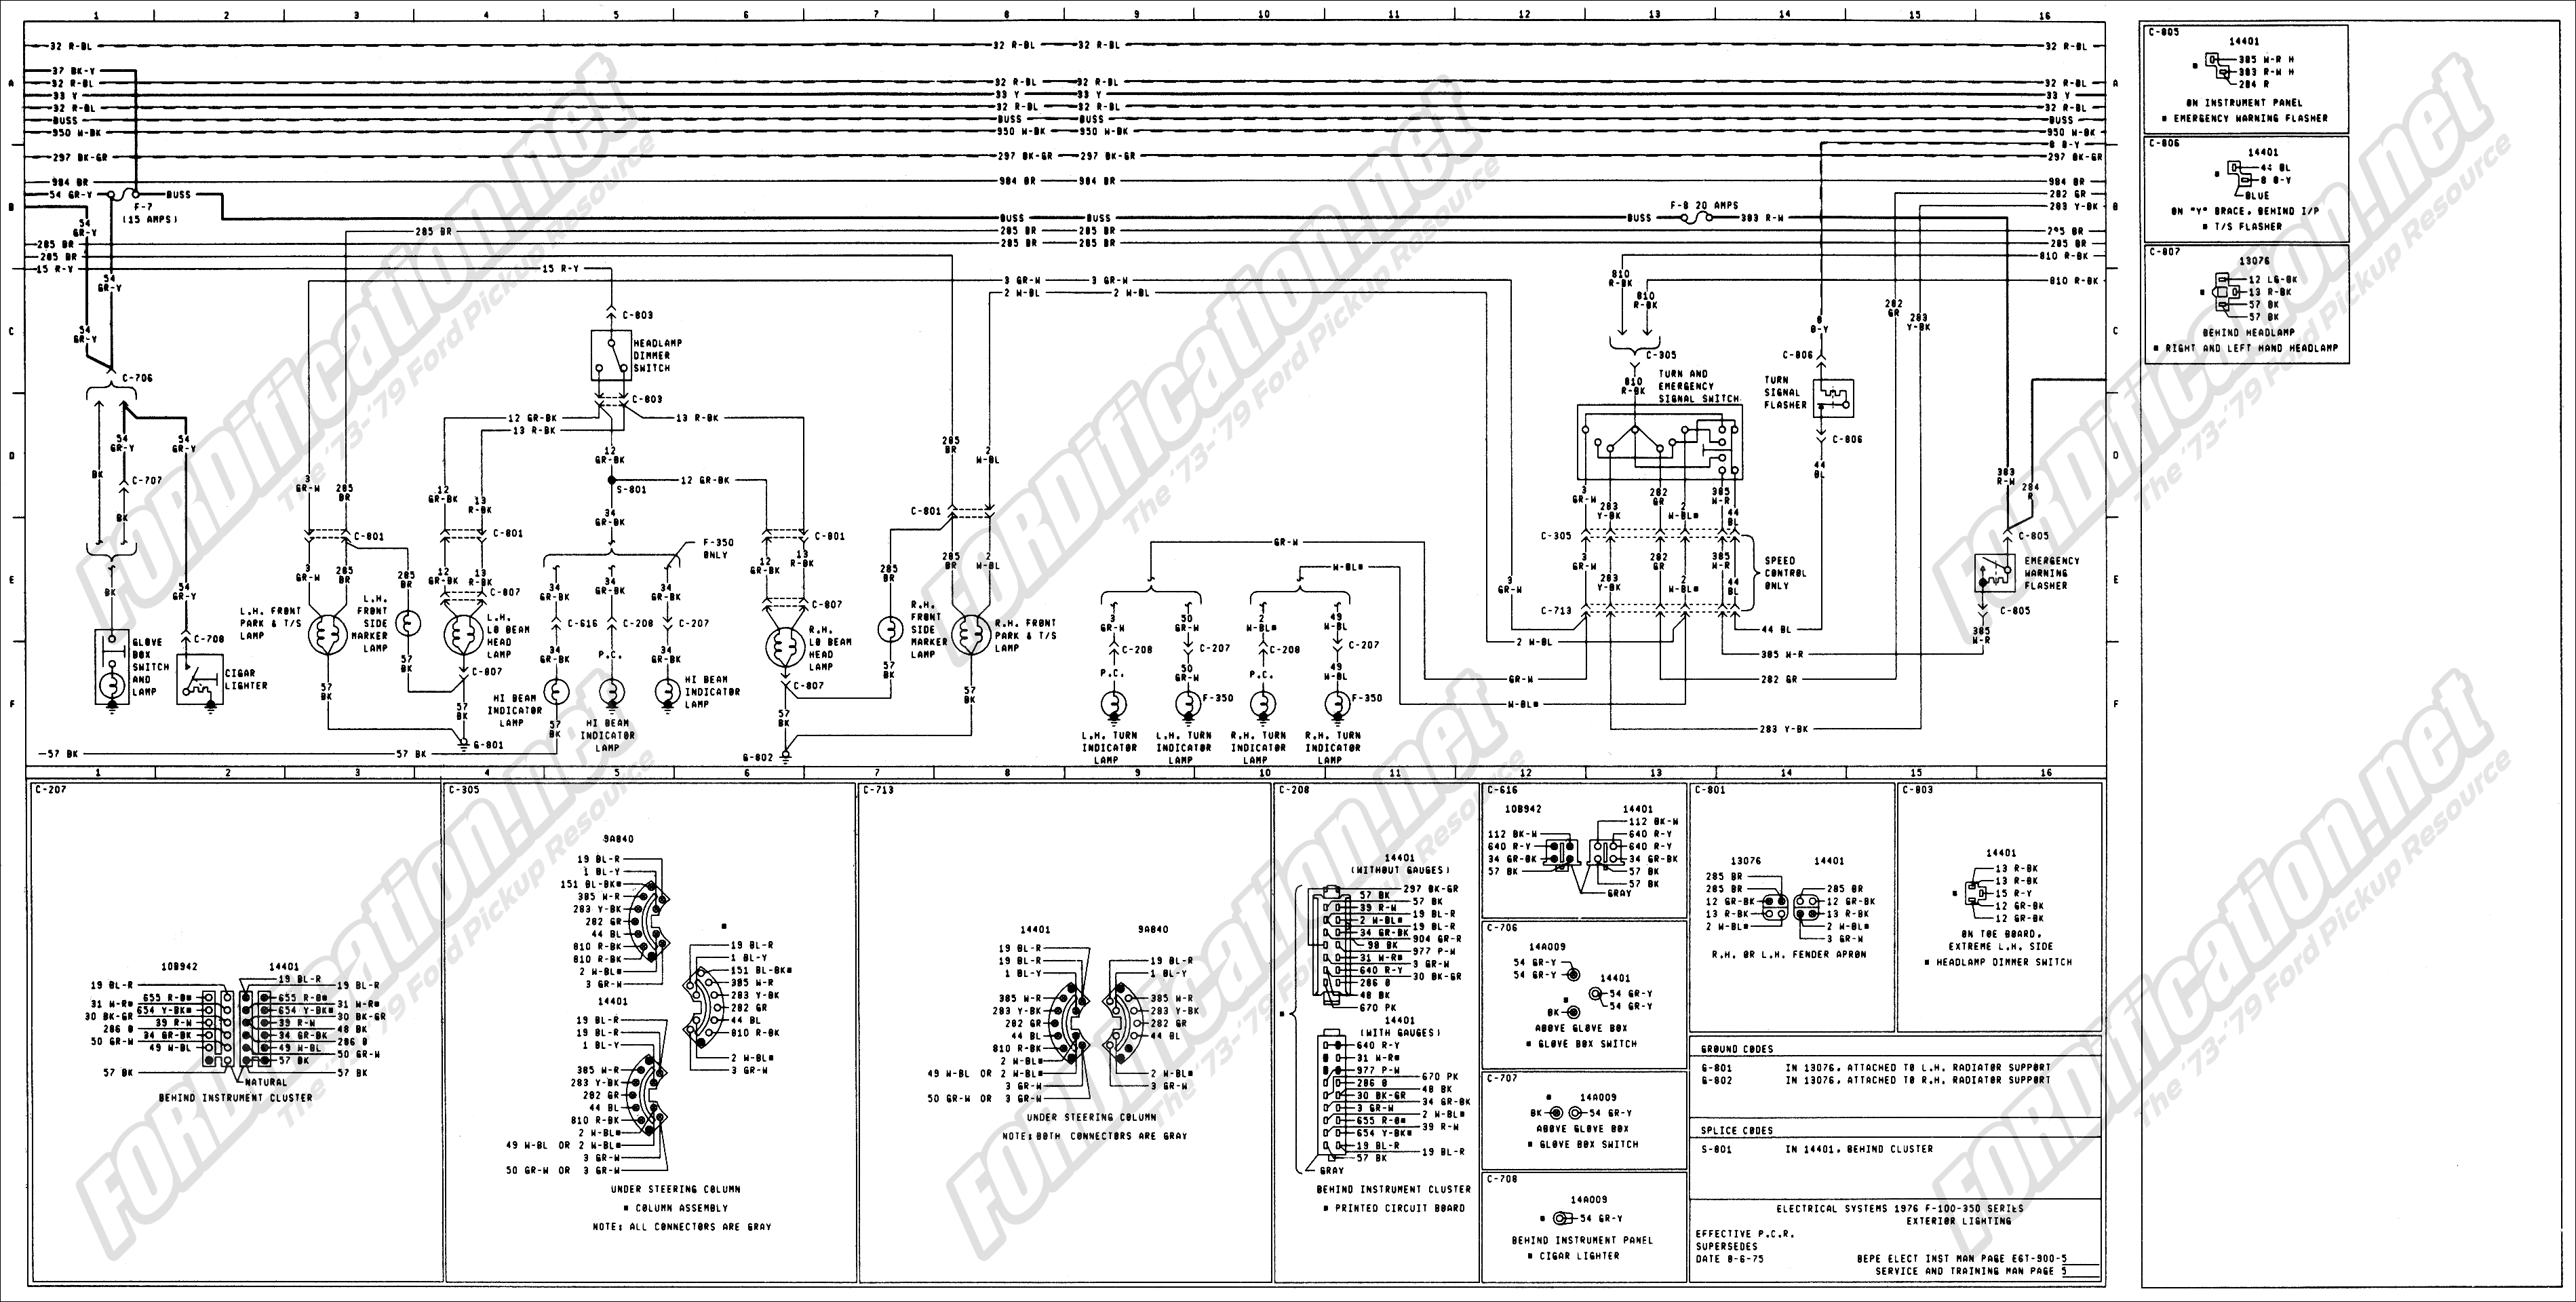 wiring_76master_5of9 1973 1979 ford truck wiring diagrams & schematics fordification net wiring diagram schematic at alyssarenee.co